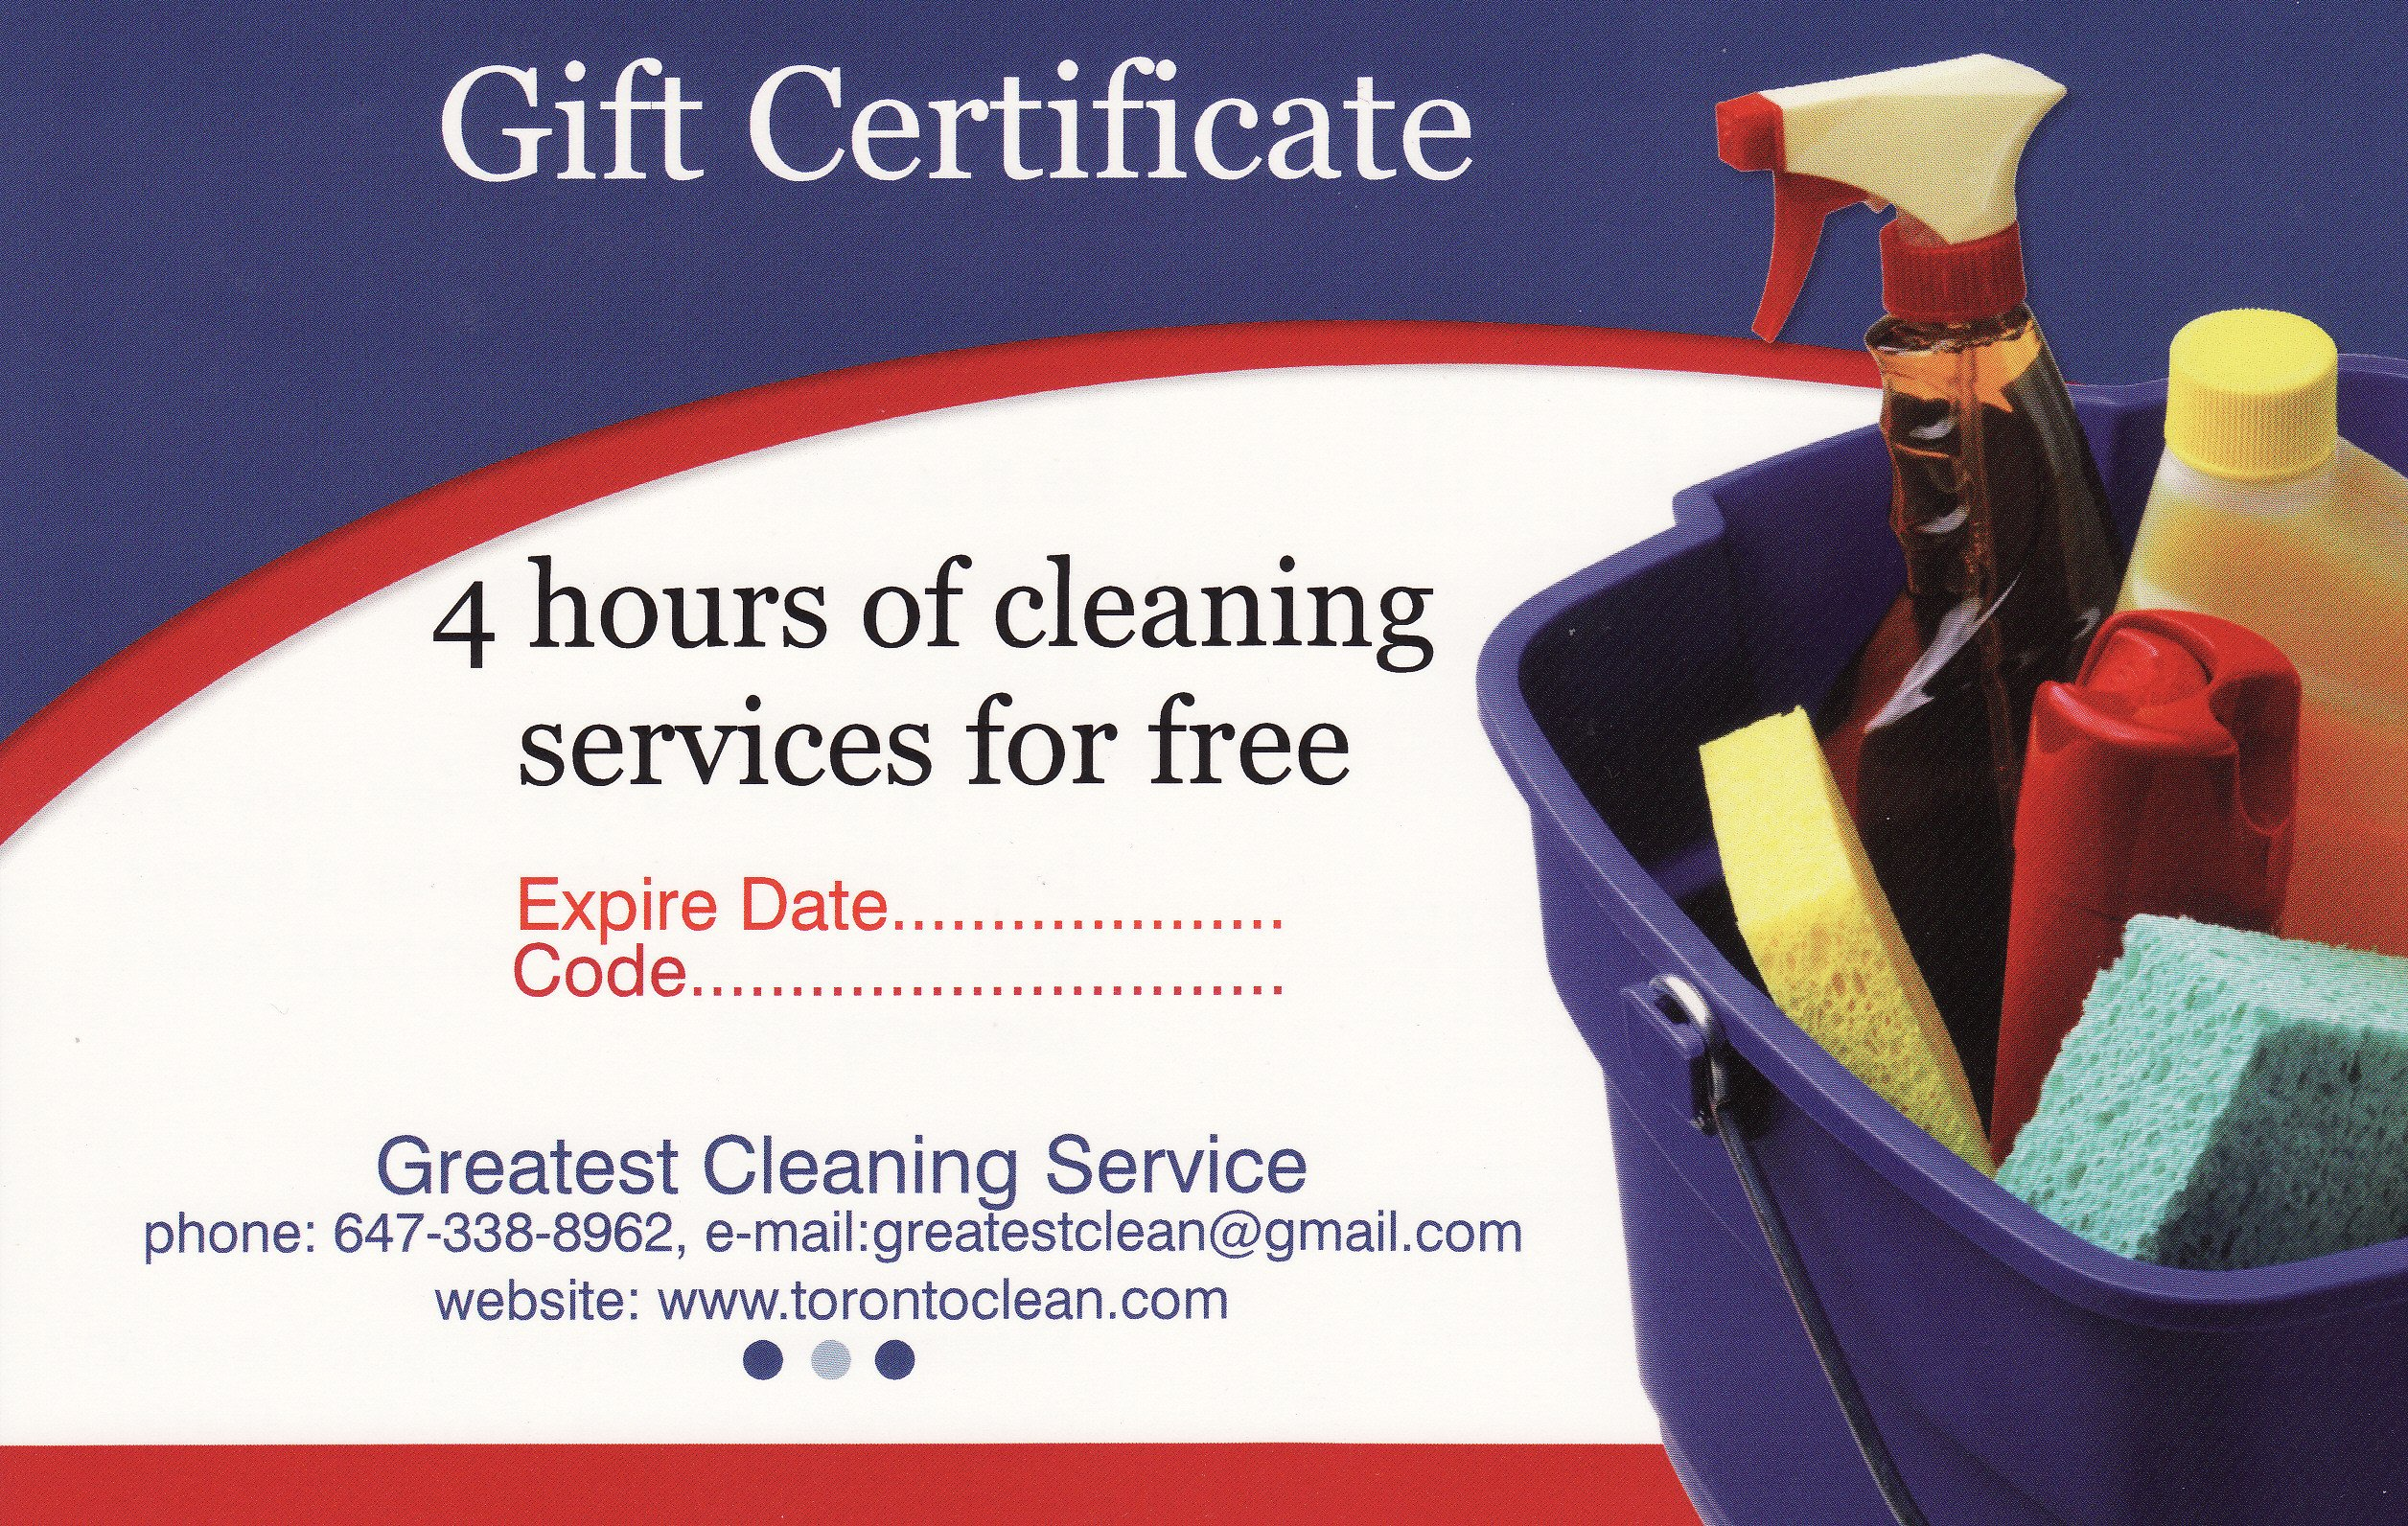 Carpet Cleaning Gift Certificate Template Cleaning Gift Certificate toronto Maid Services Gift